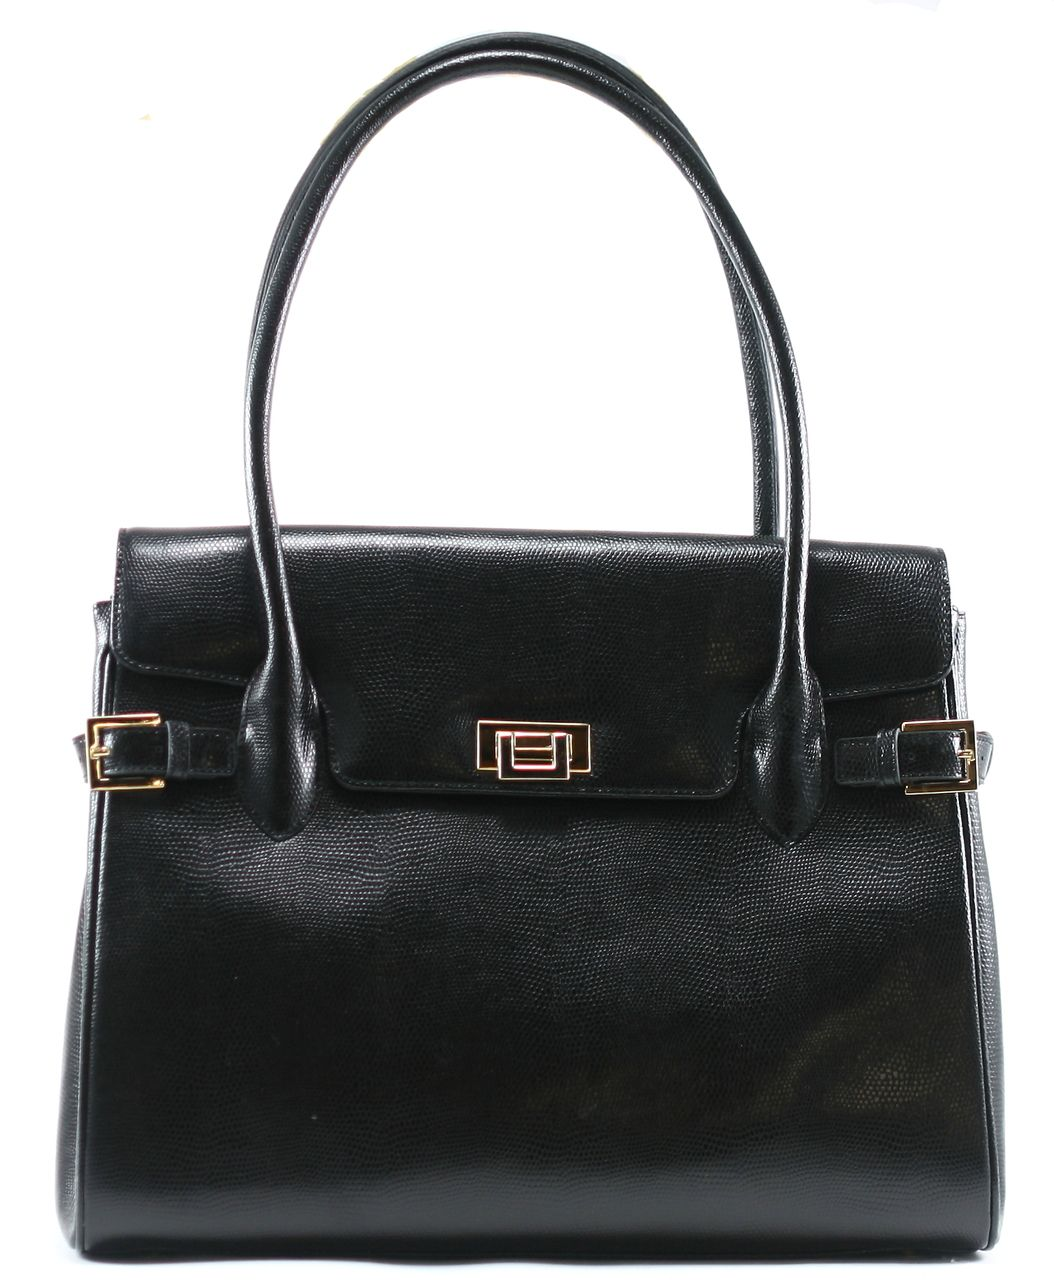 Muska Lizard Vanna Bag 36 Cm Black Nero Milano